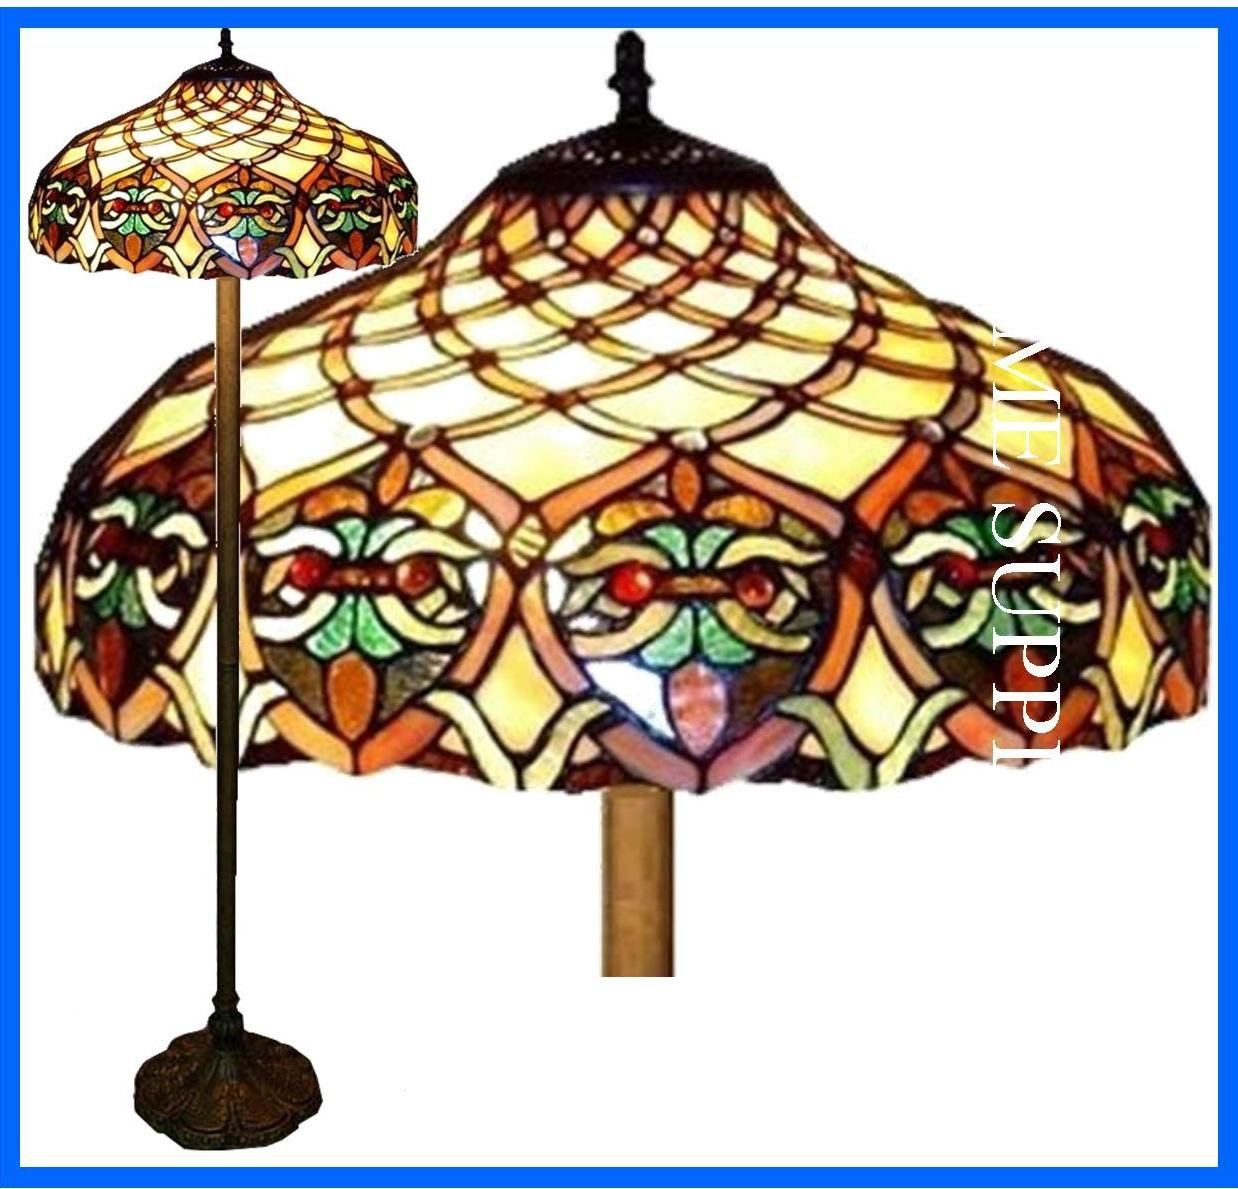 Baroque Tiffany Style Floor Lamp       Customer reviews and more information